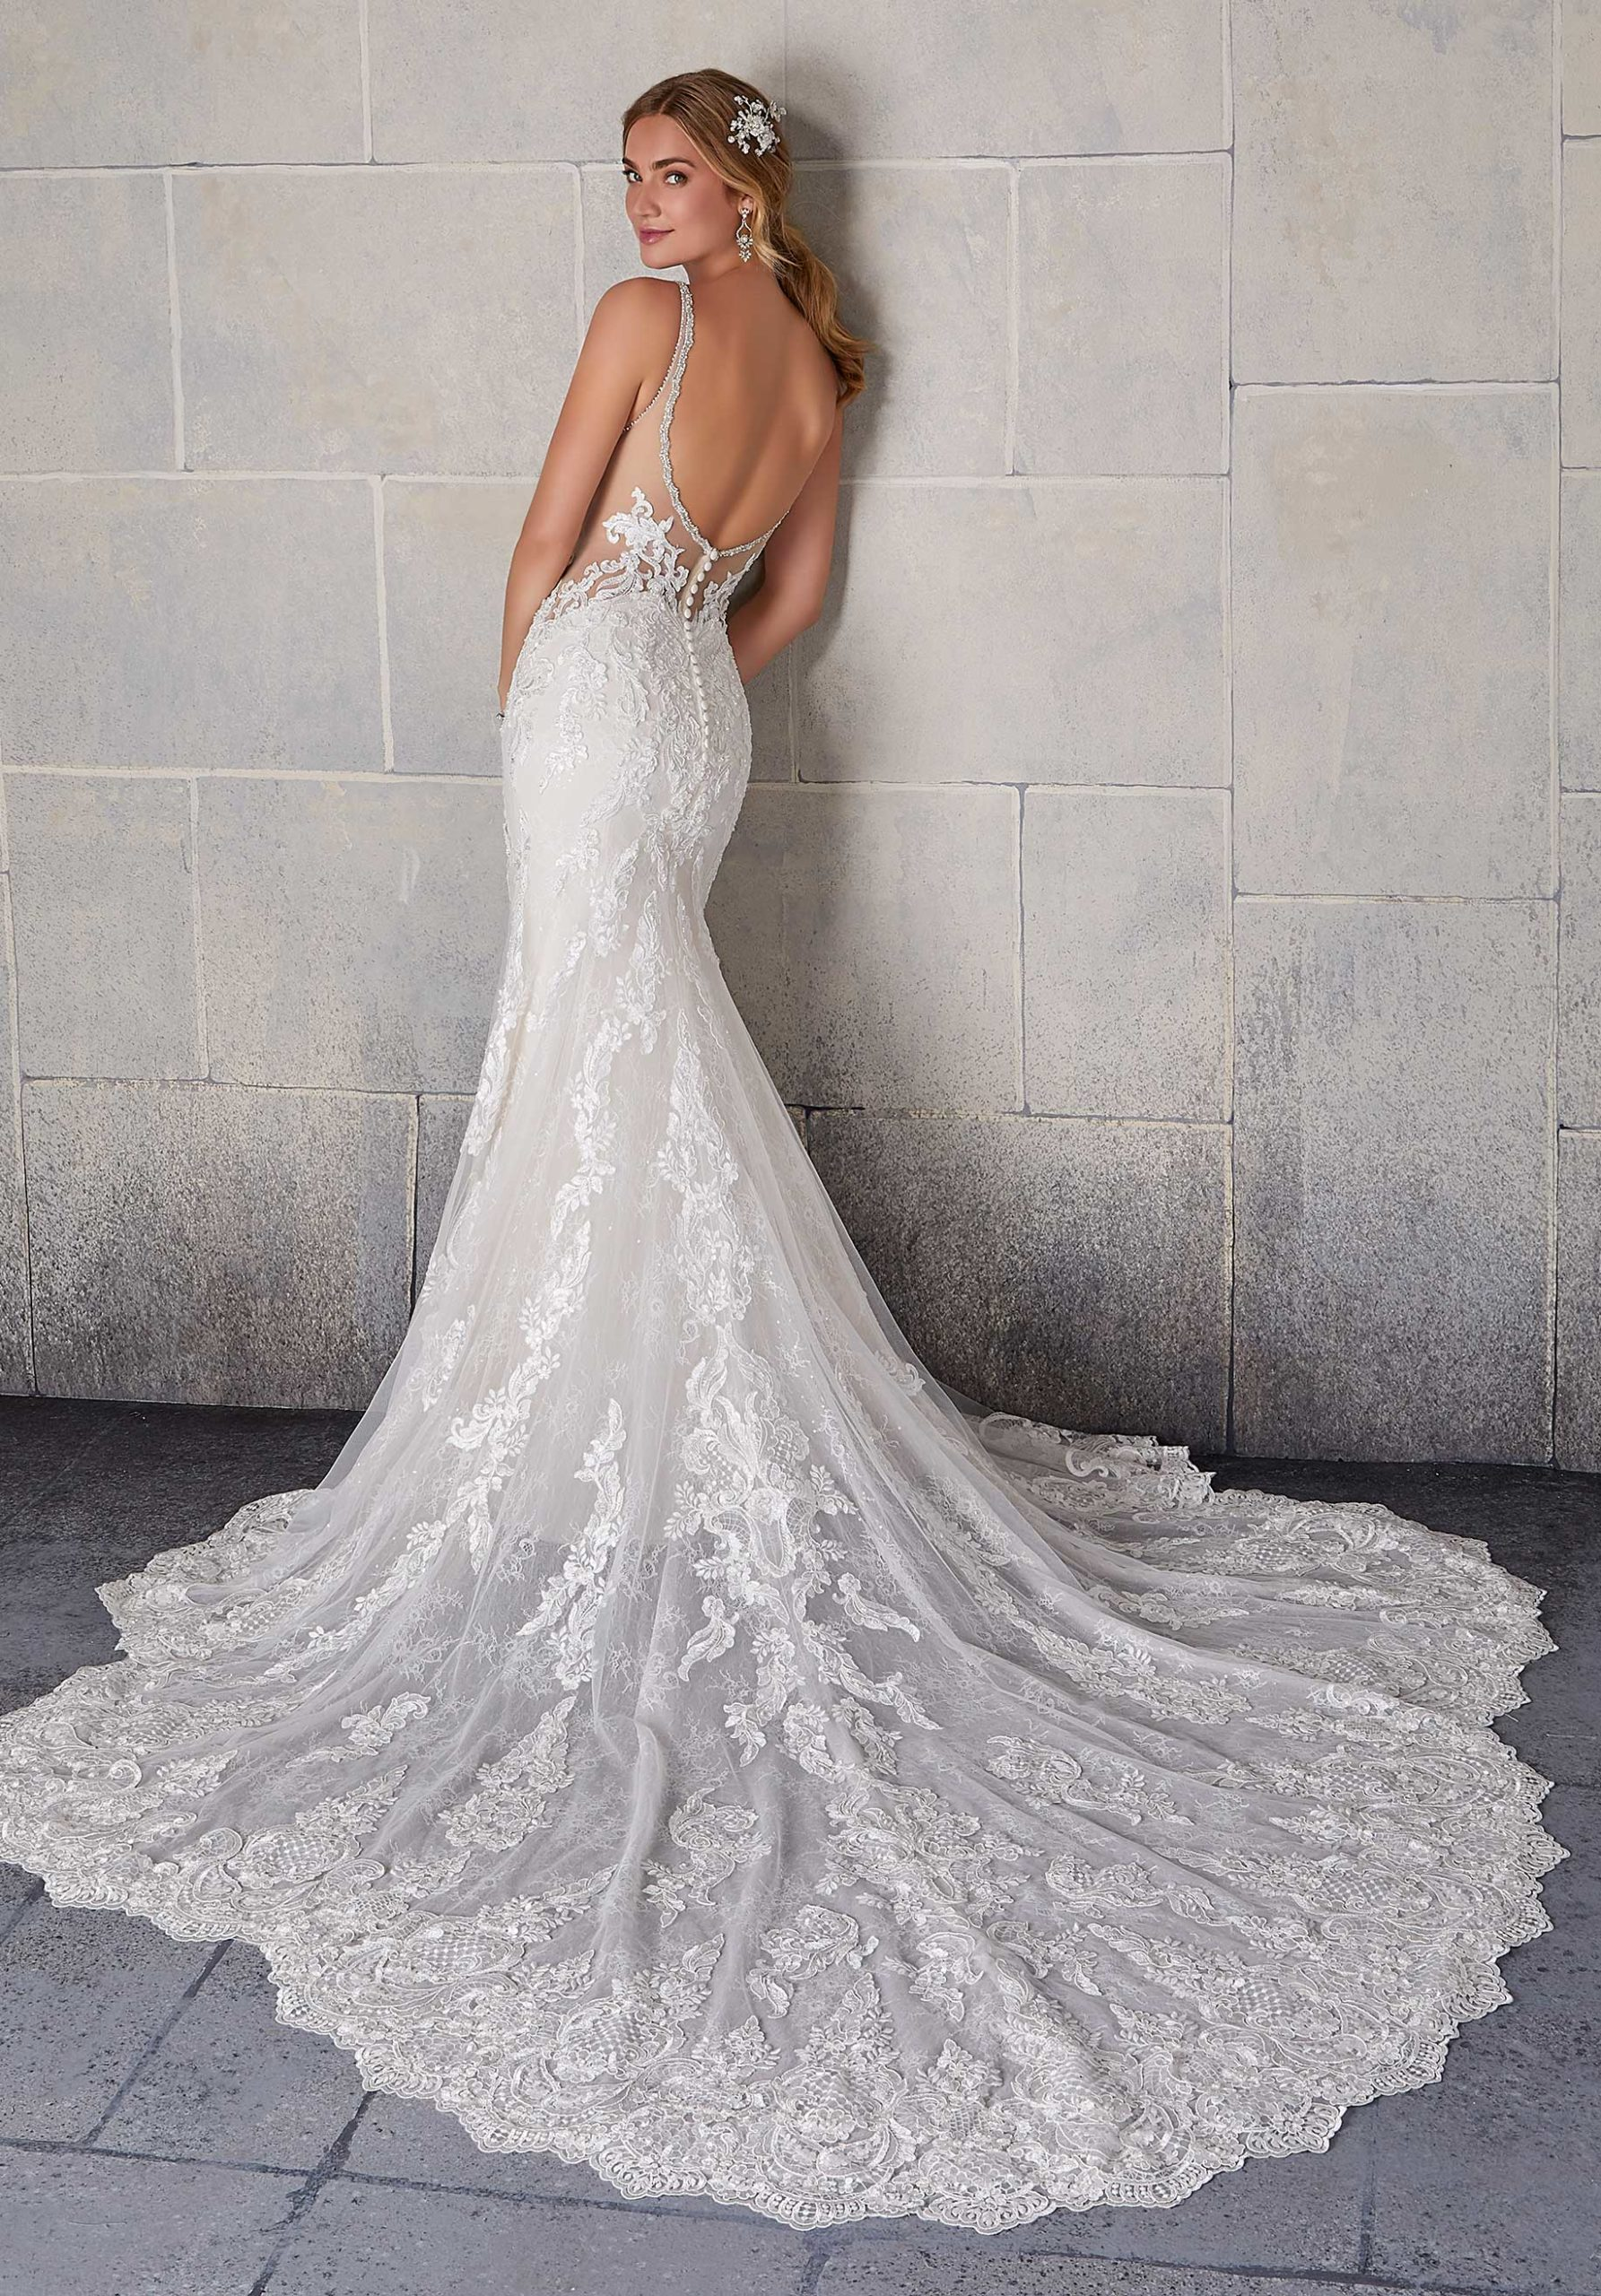 Morilee Wedding Gown Dress style 2139 back